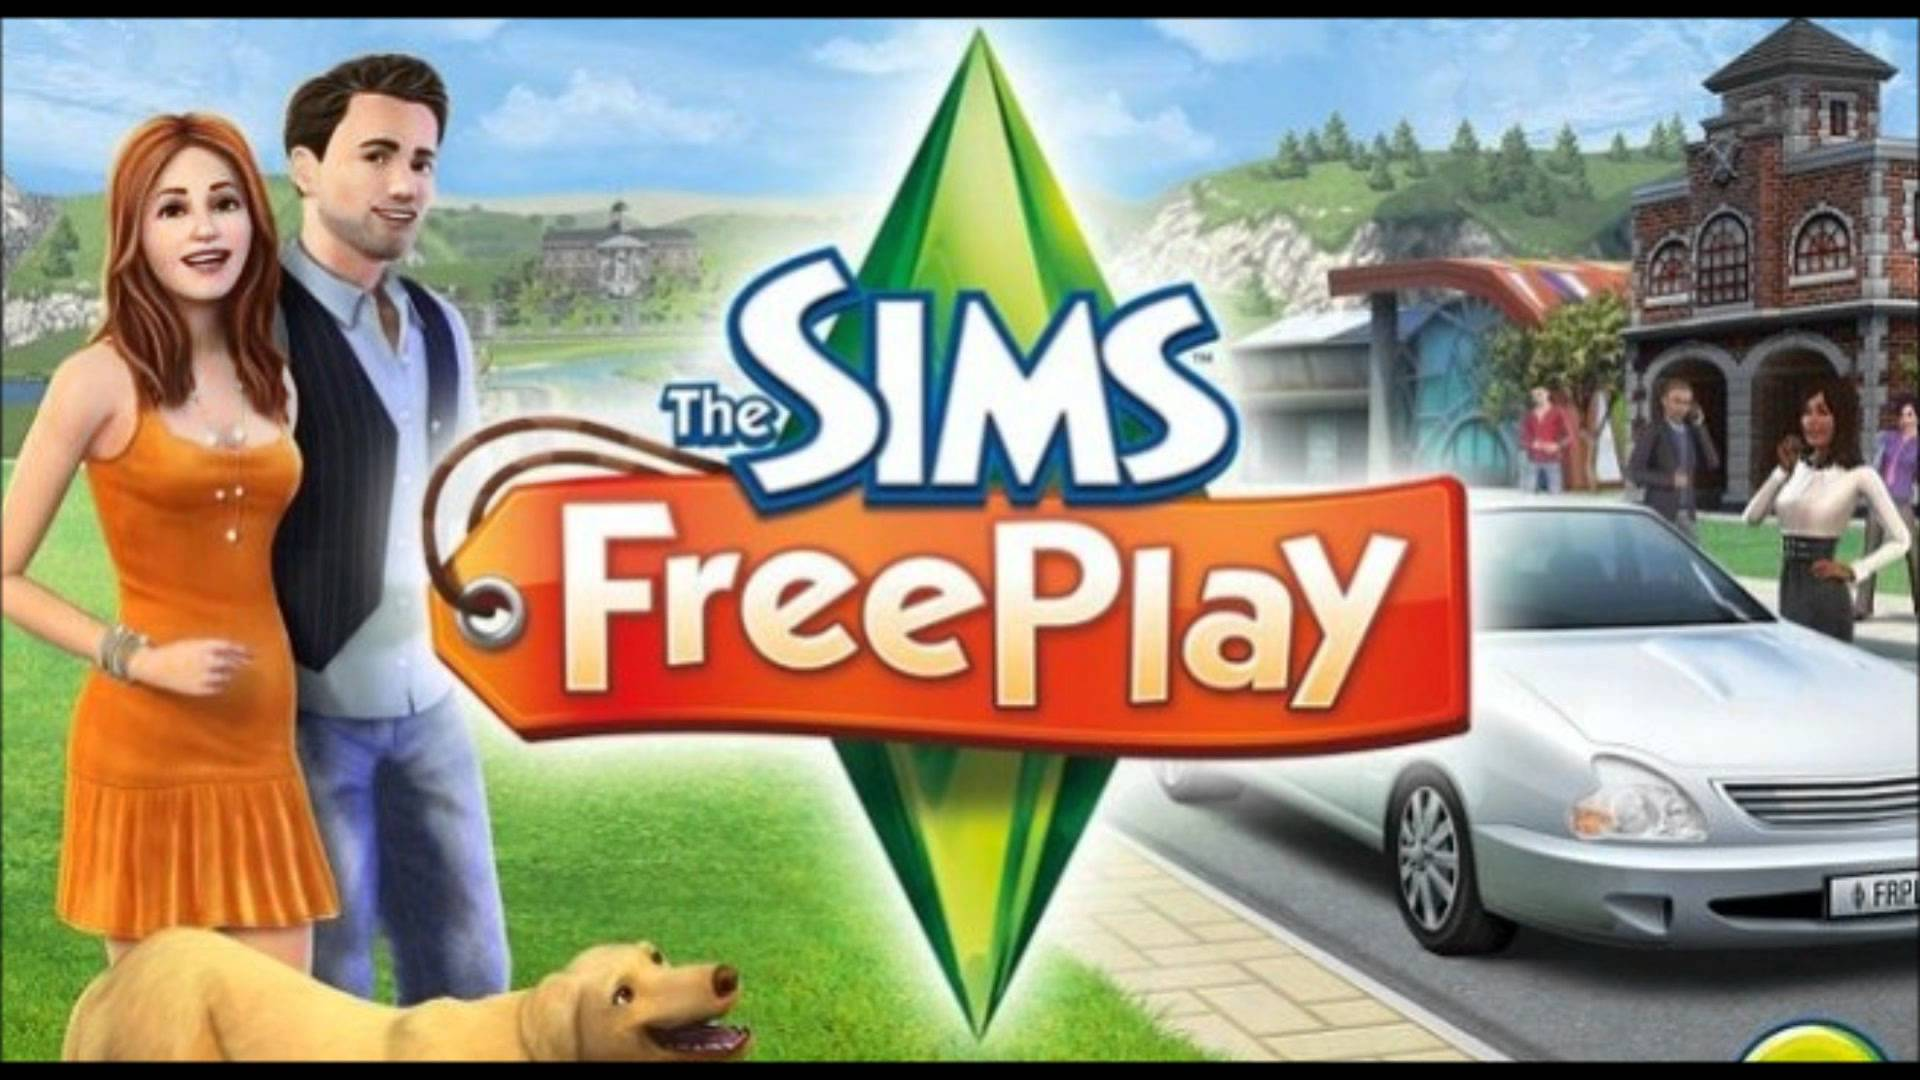 【THESIMSMOBILEHACK2018.COM THE SIMS FREEPLAY】 Lifestyle Points and Simoleons FOR ANDROID IOS PC PLAYSTATION | 100% WORKING METHOD | GET UNLIMITED RESOURCES NOW